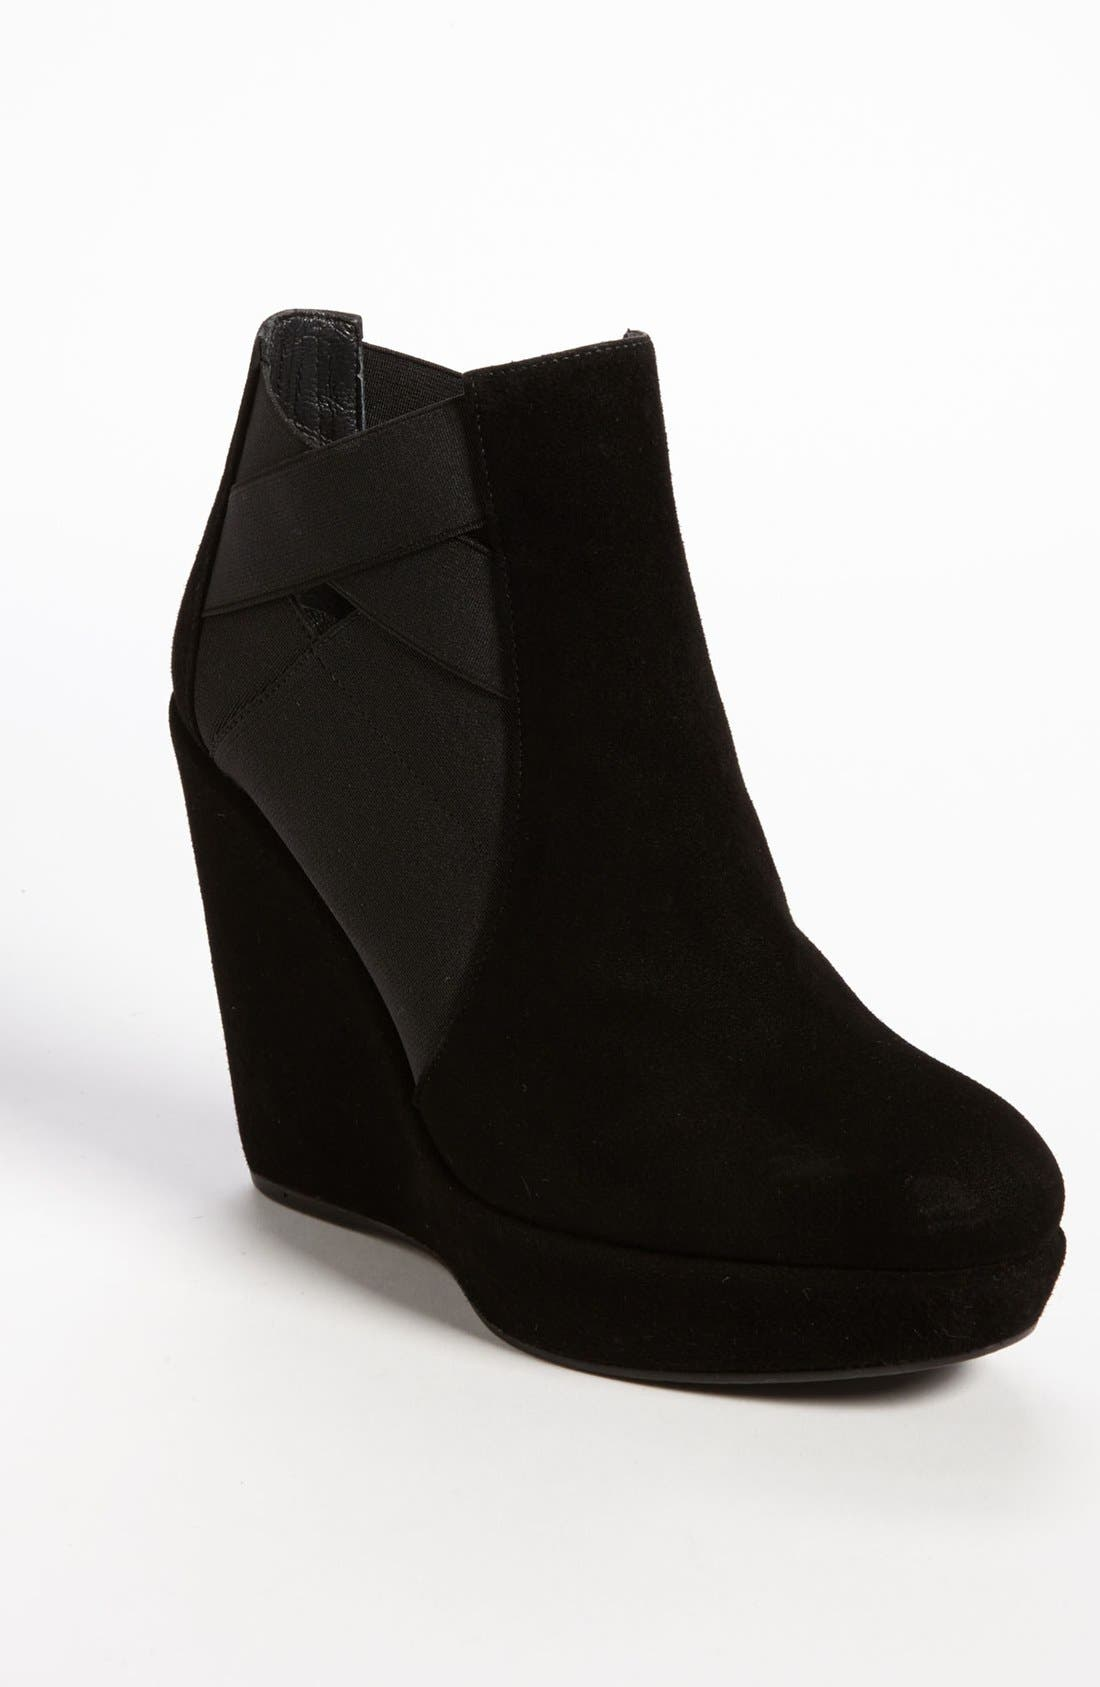 Alternate Image 1 Selected - Stuart Weitzman 'Hiembrace' Bootie